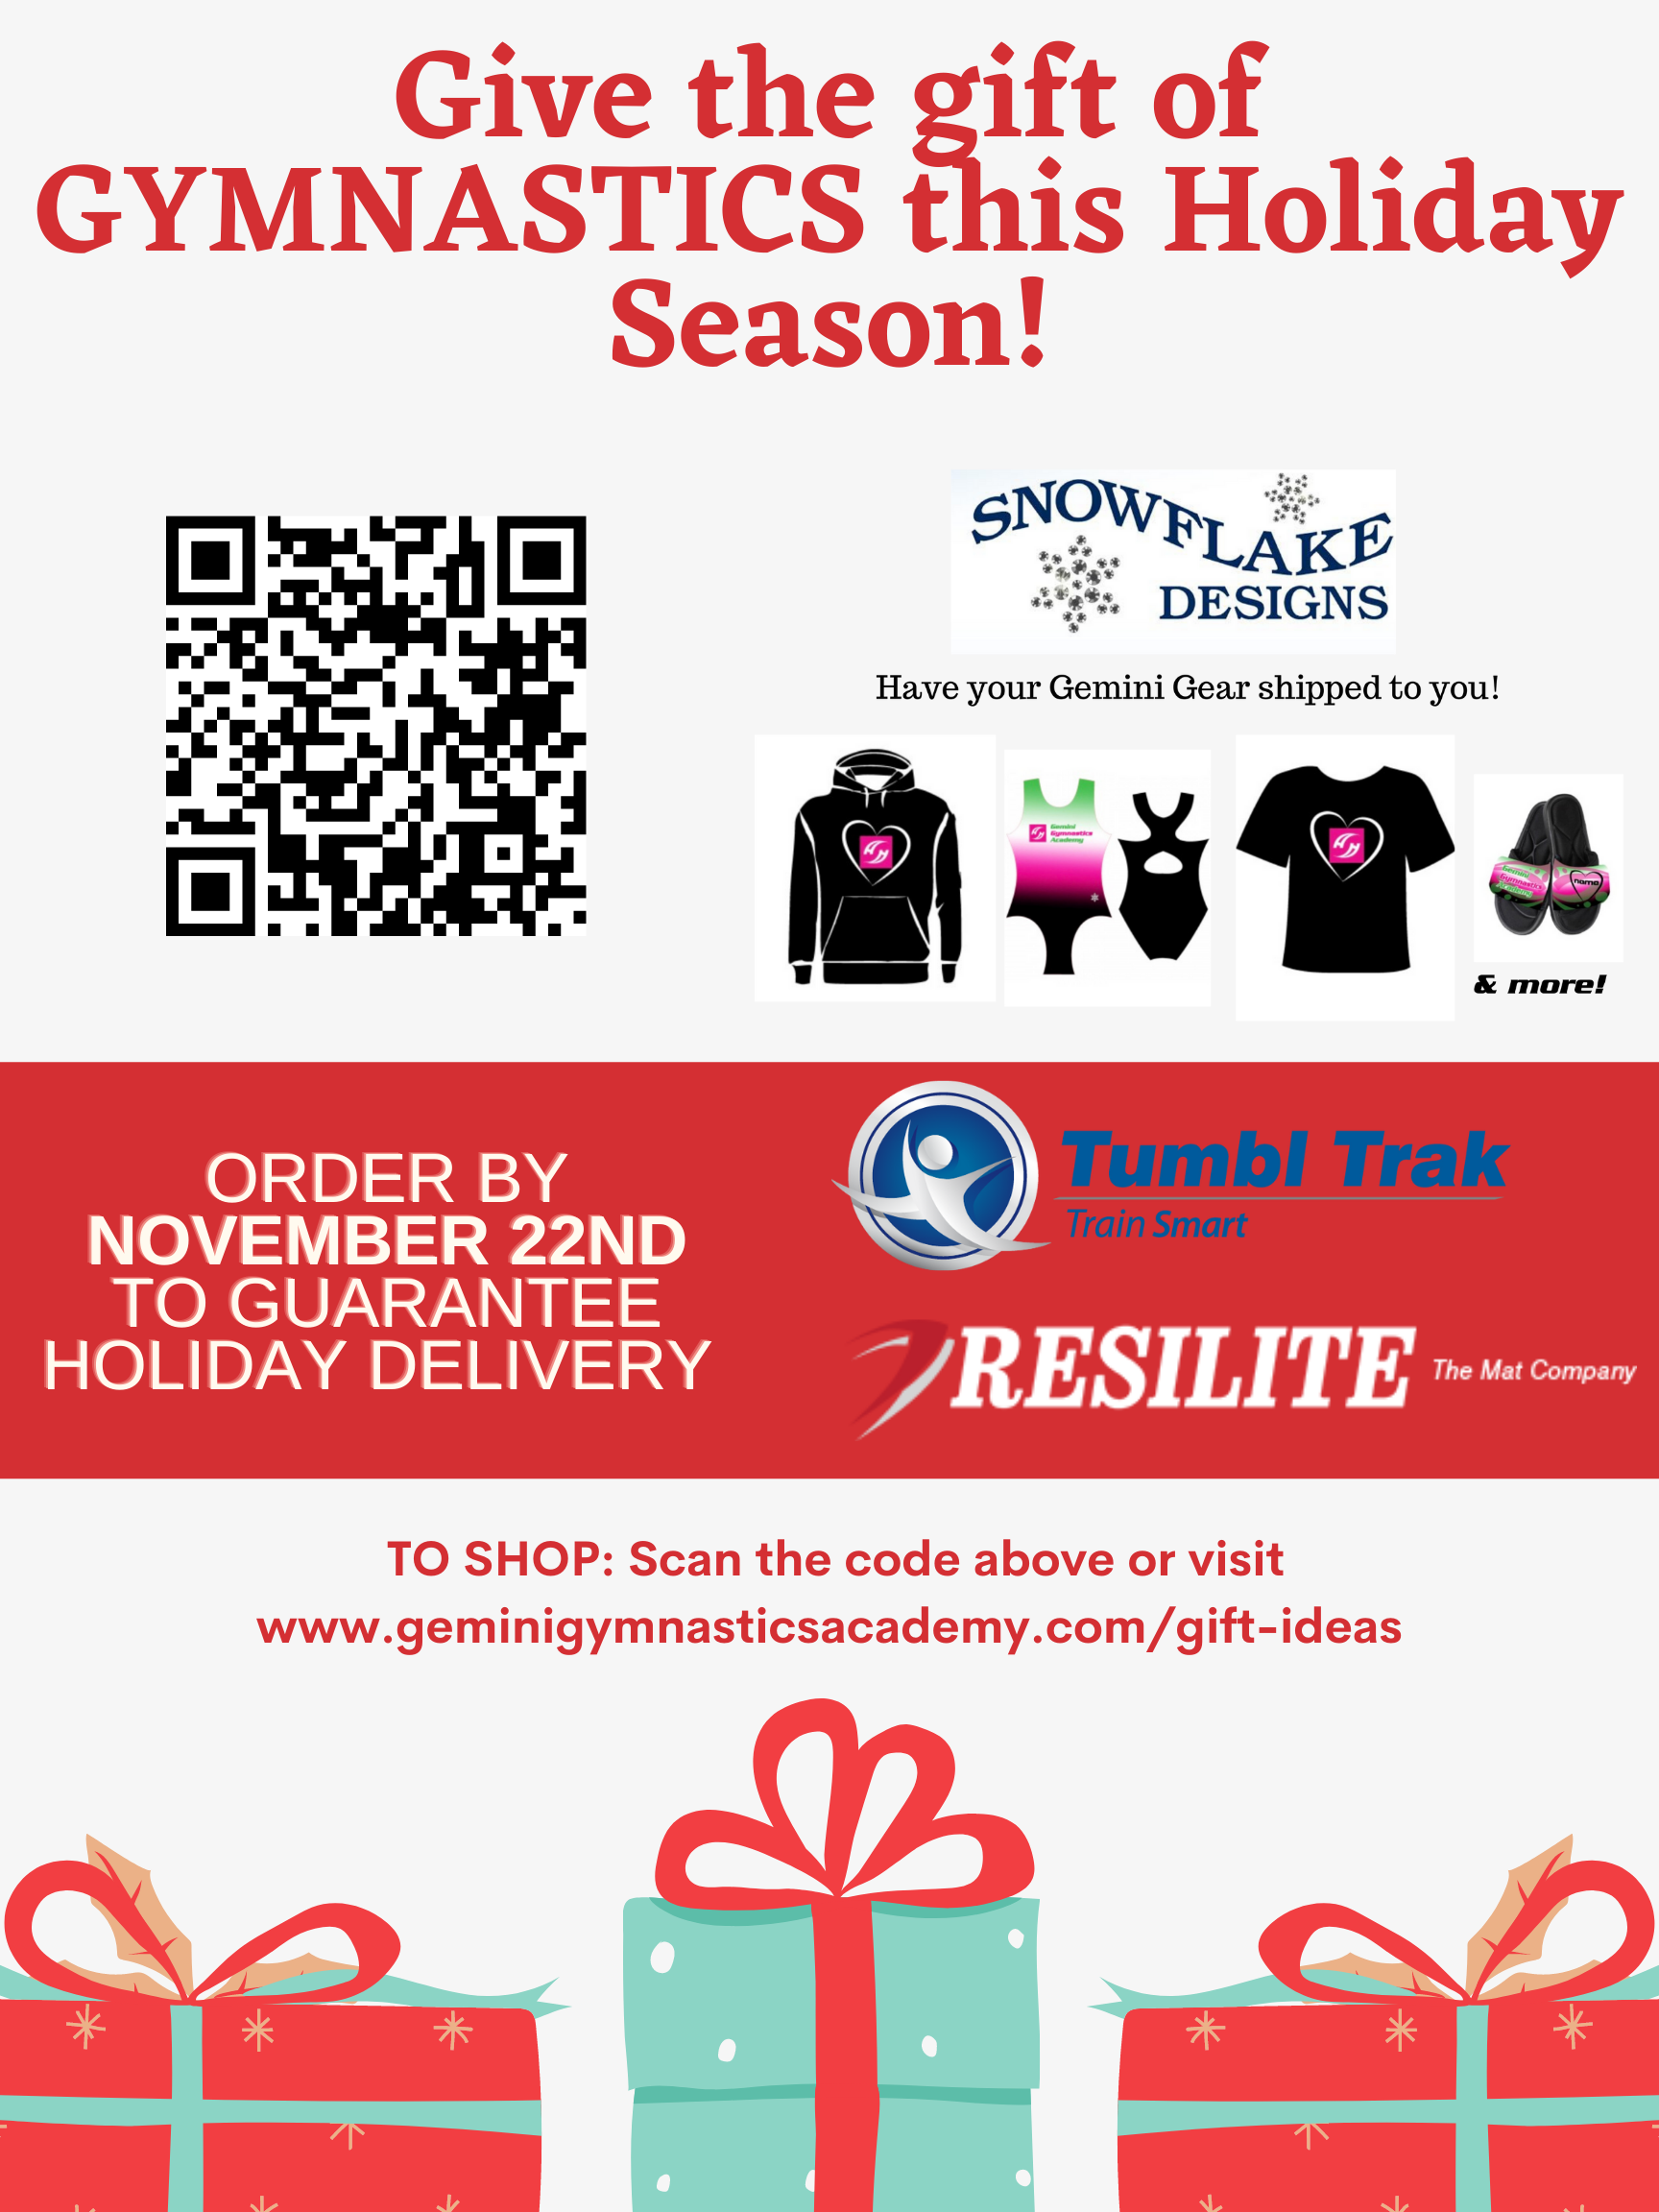 PLACE HOLIDAY ORDERS BY 11/22!